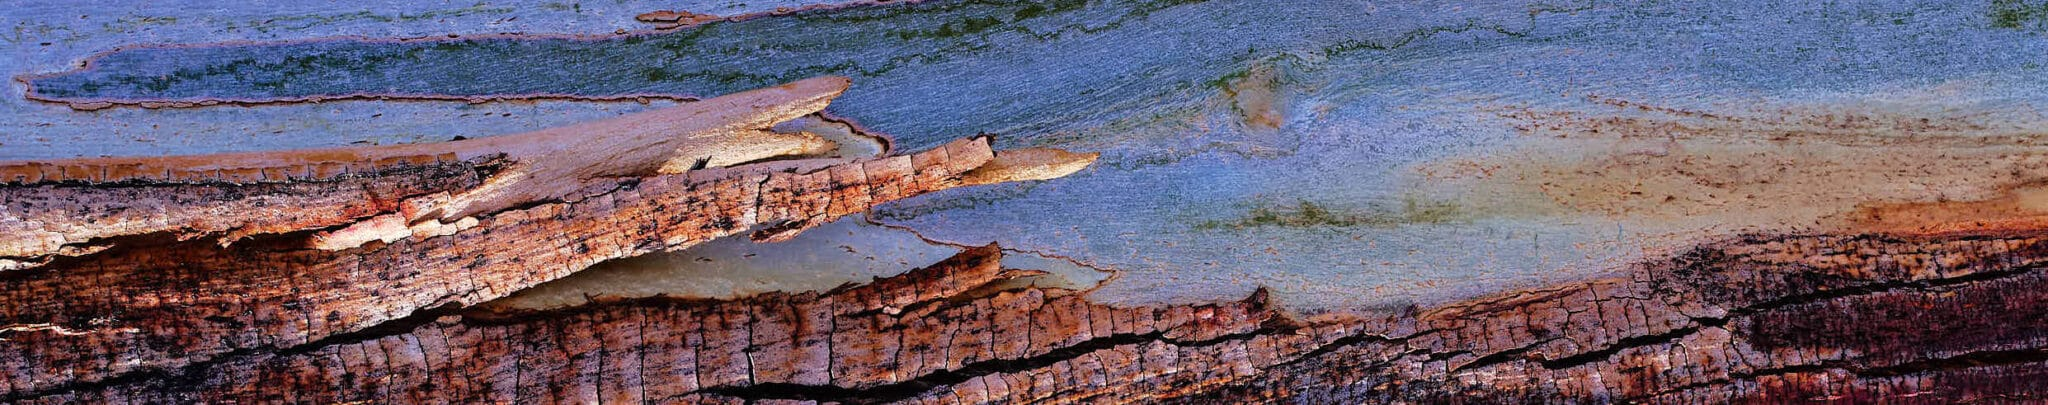 photography lessons for precise focusing on tree bark